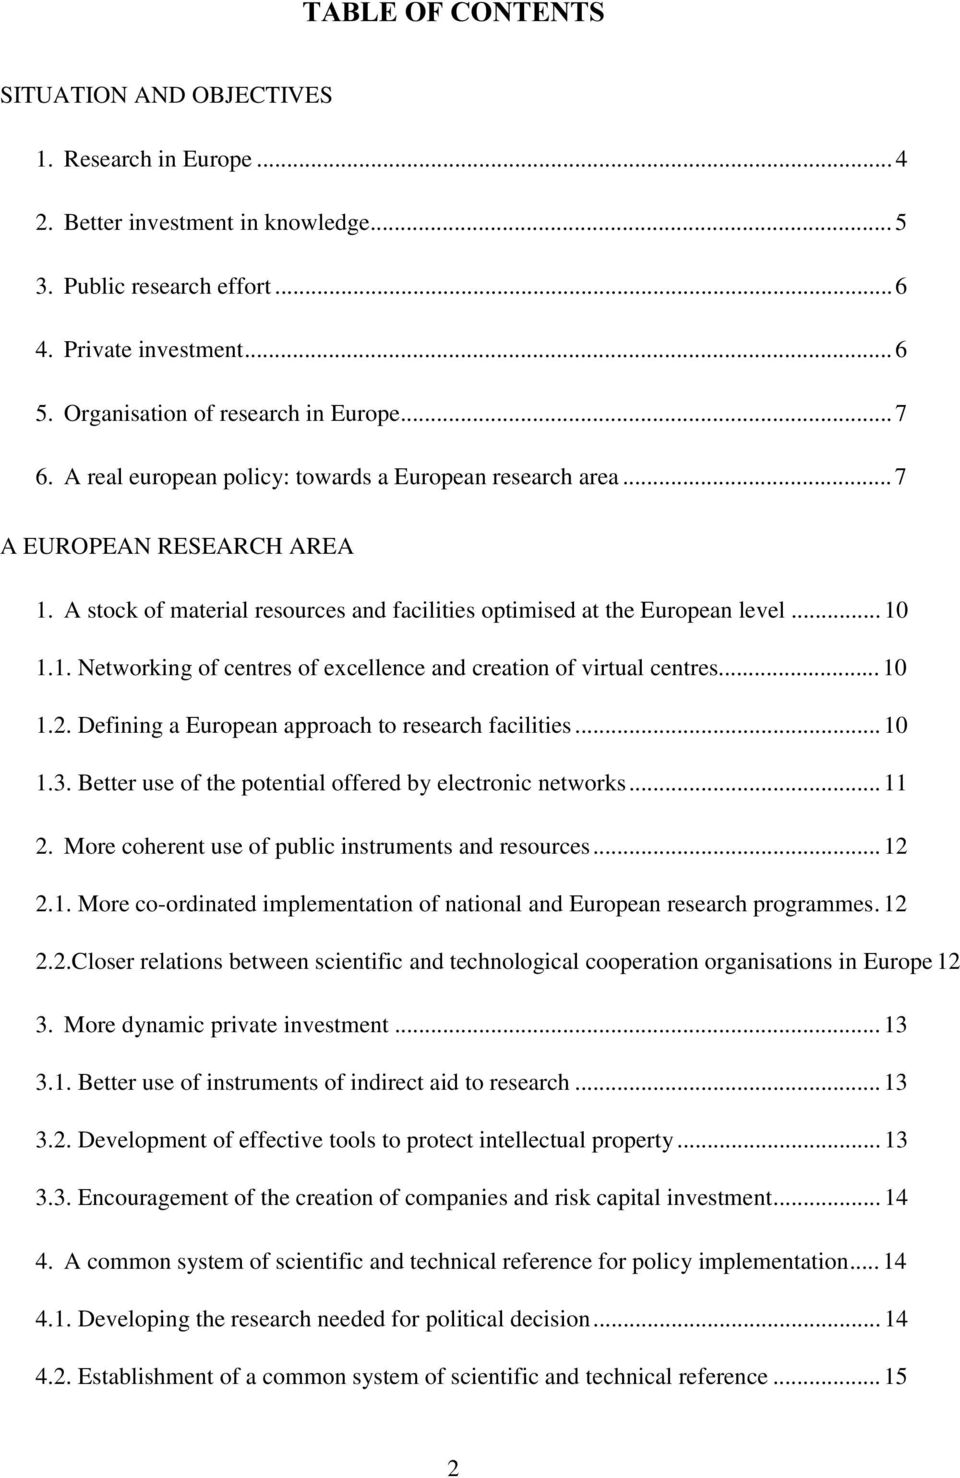 .. 10 1.2. Defining a European approach to research facilities... 10 1.3. Better use of the potential offered by electronic networks... 11 2. More coherent use of public instruments and resources.